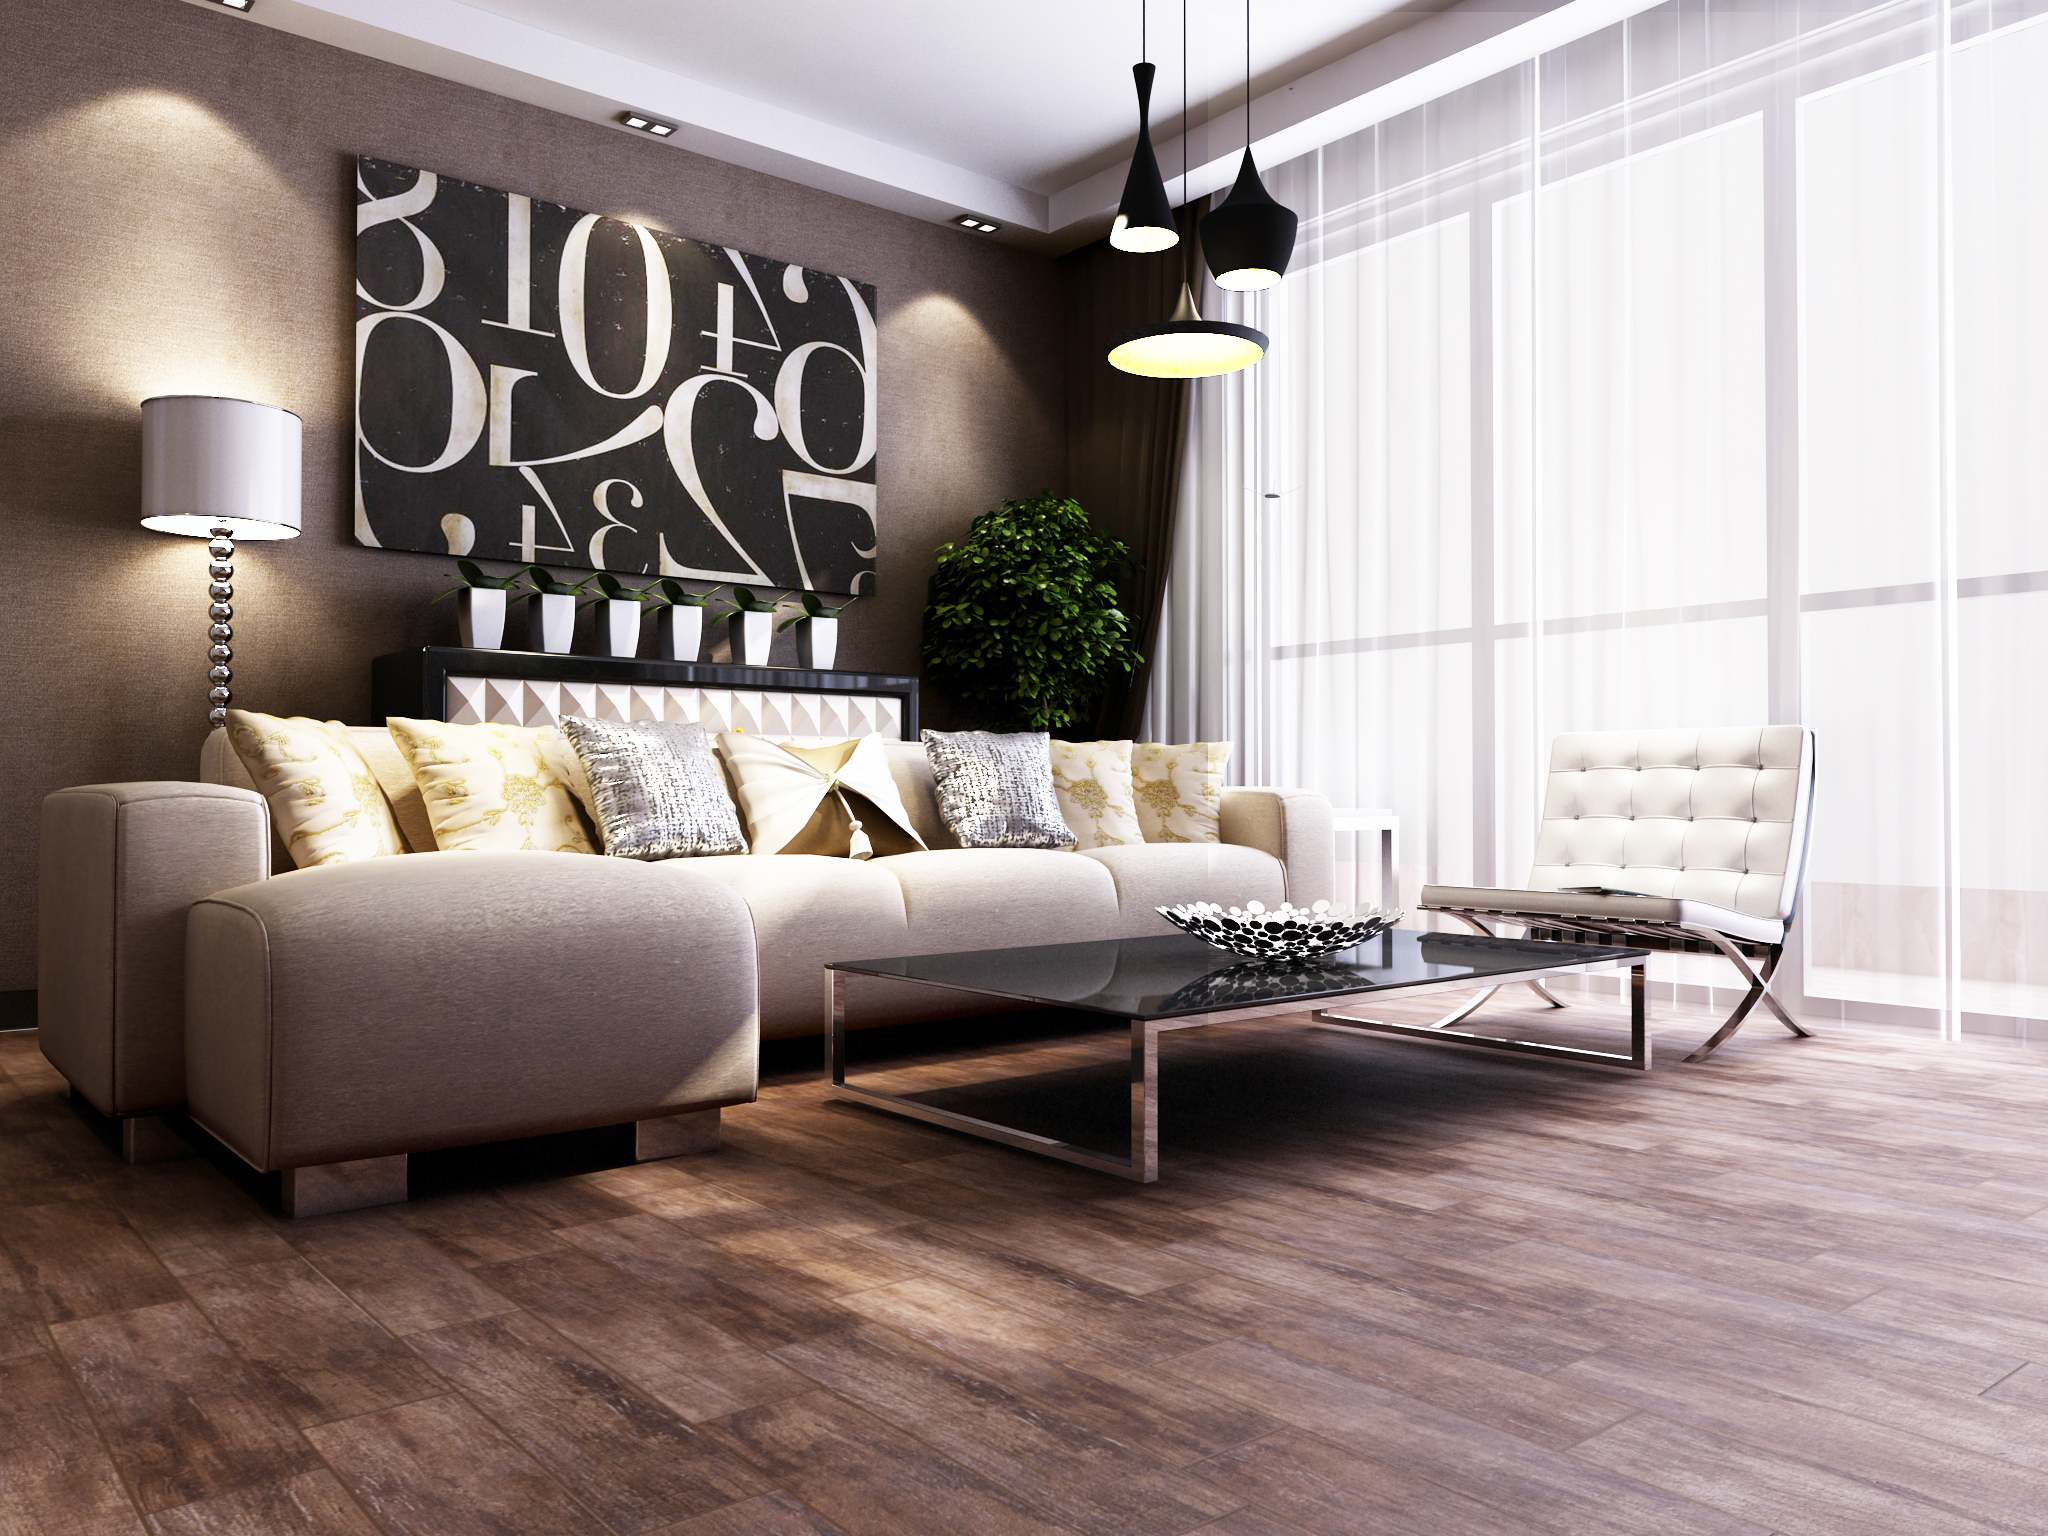 awesome living room decor with interceramic tile floor matched with brown wall plus white sofa ideas